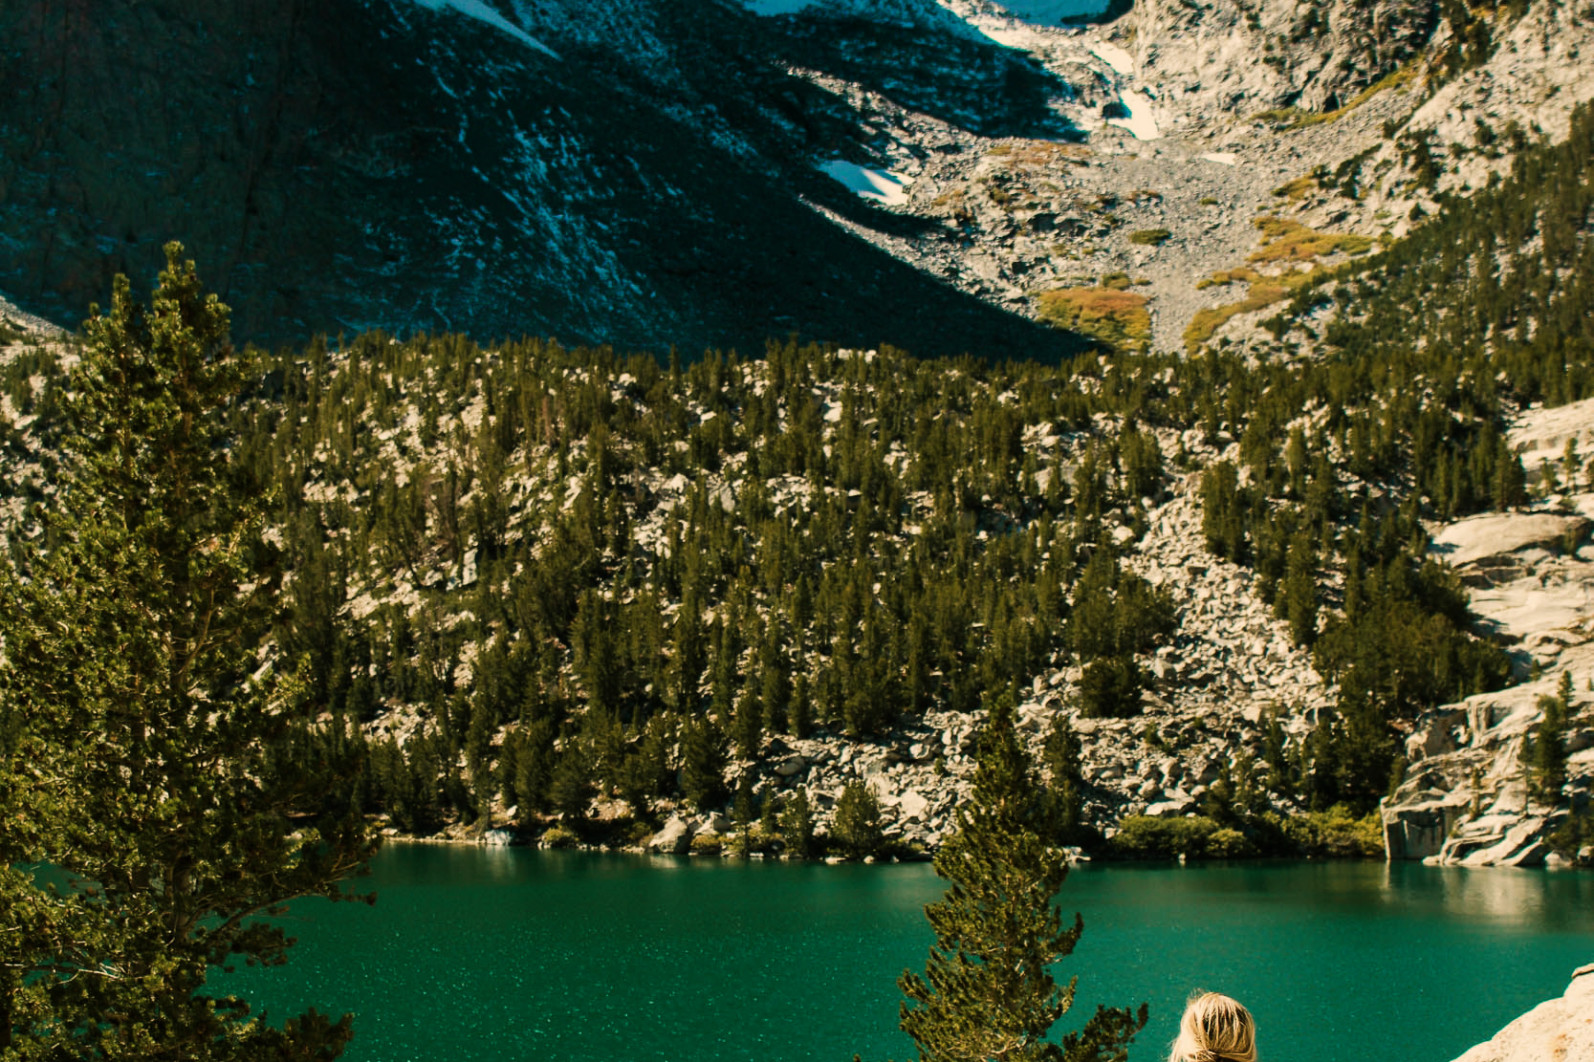 CINEMATIC Cocoa Green Film LUTS PACK for Videos / Moody / Travel - katie rodriguez 0TyhR3VhoDw unsplash -